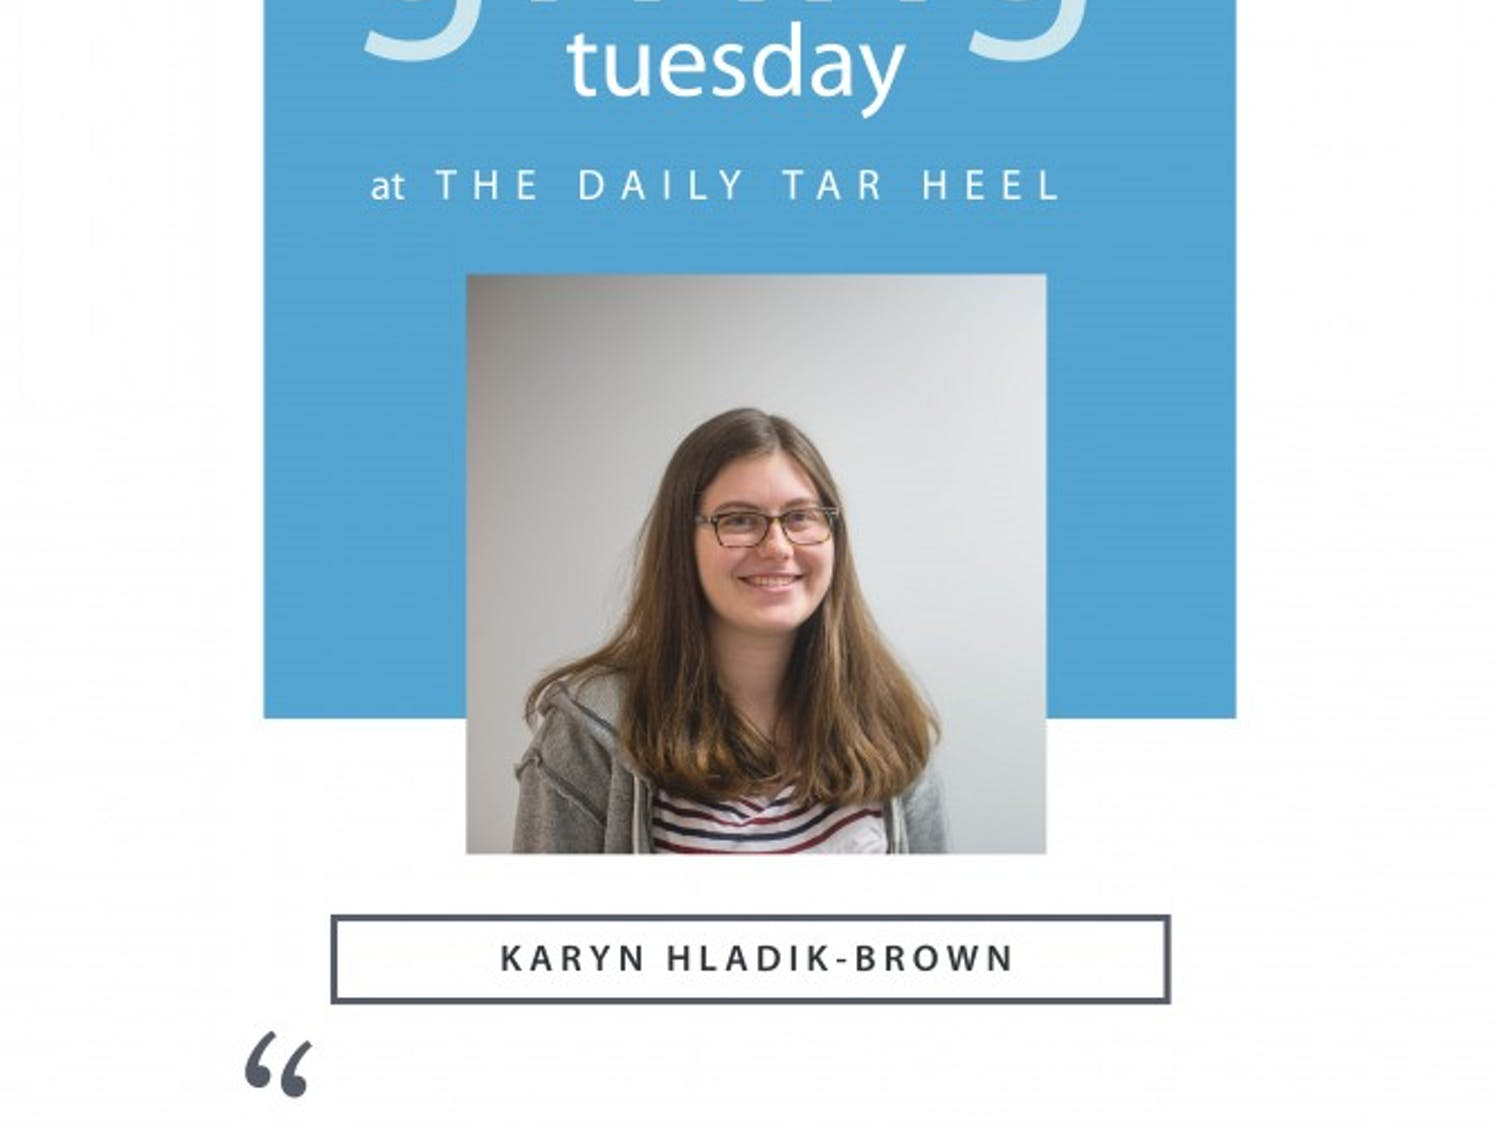 In honor of #GivingTuesday, the staff of The Daily Tar Heel is discussing the things that make the newsroom special. Read their stories here, and donate to the DTH at friends.dailytarheel.com.